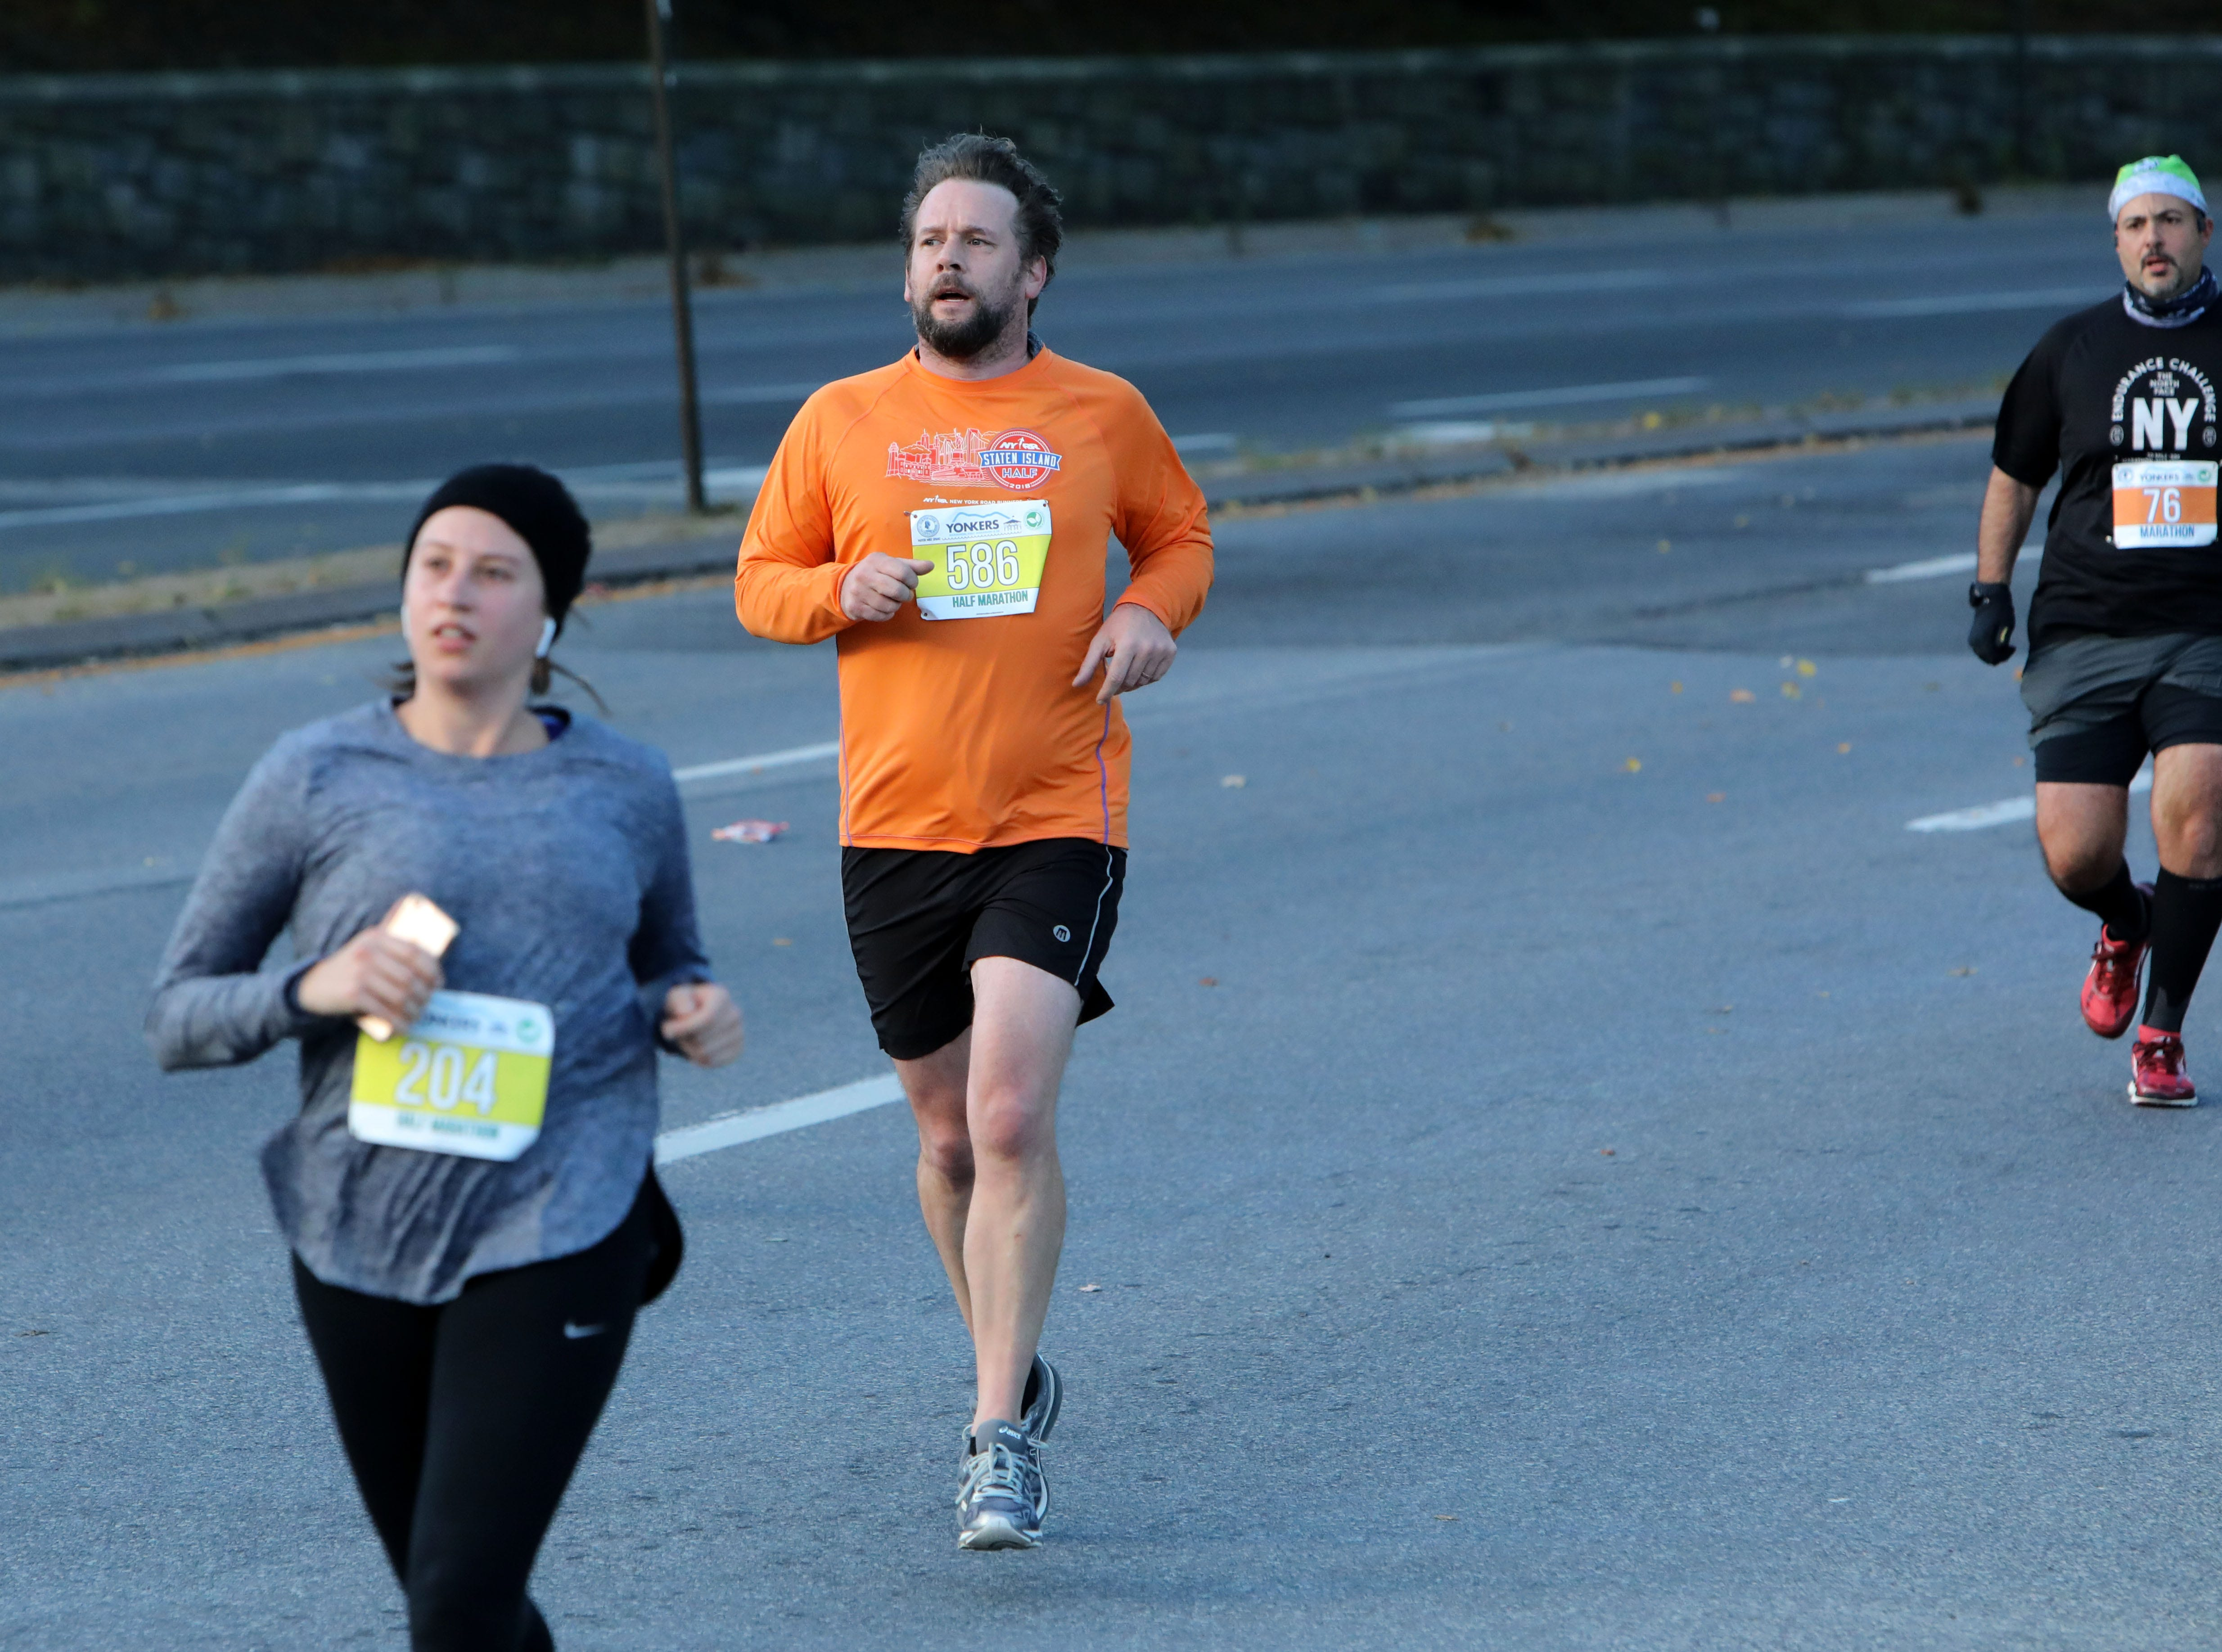 Runners compete in the Yonkers Marathon, half marathon and 5k, which started at Yonkers Riverfront Library, Oct. 21, 2018.